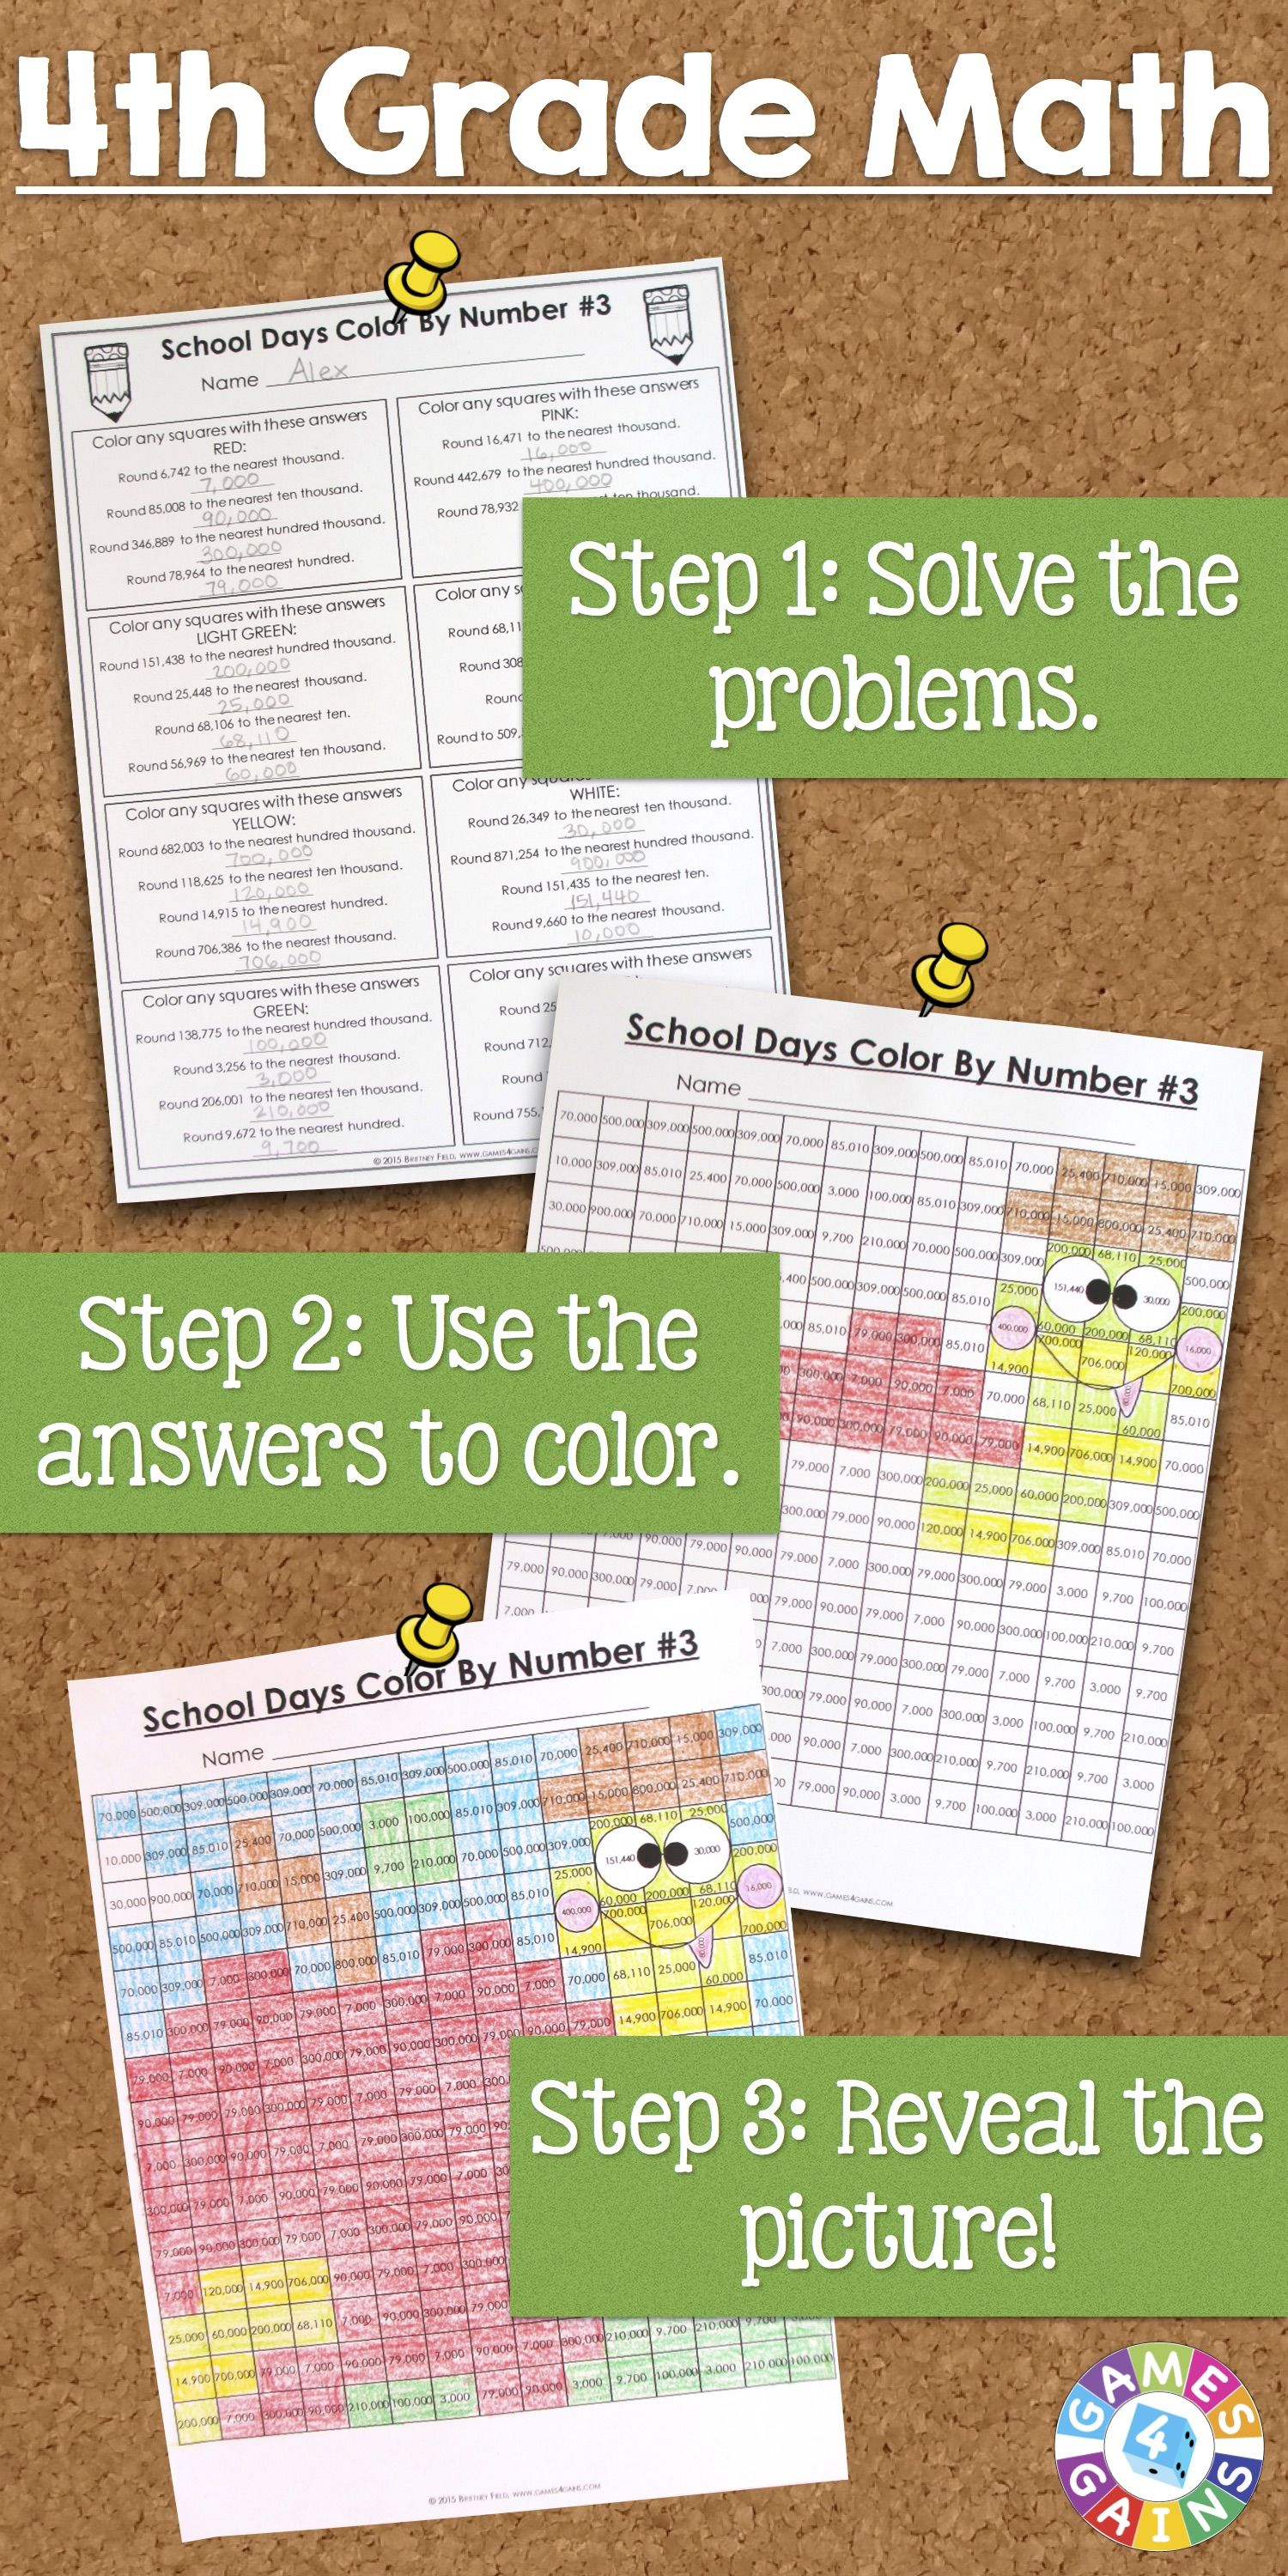 hight resolution of 4th Grade Place Value Worksheets (5th Grade Back to School Math Review)   4th  grade math